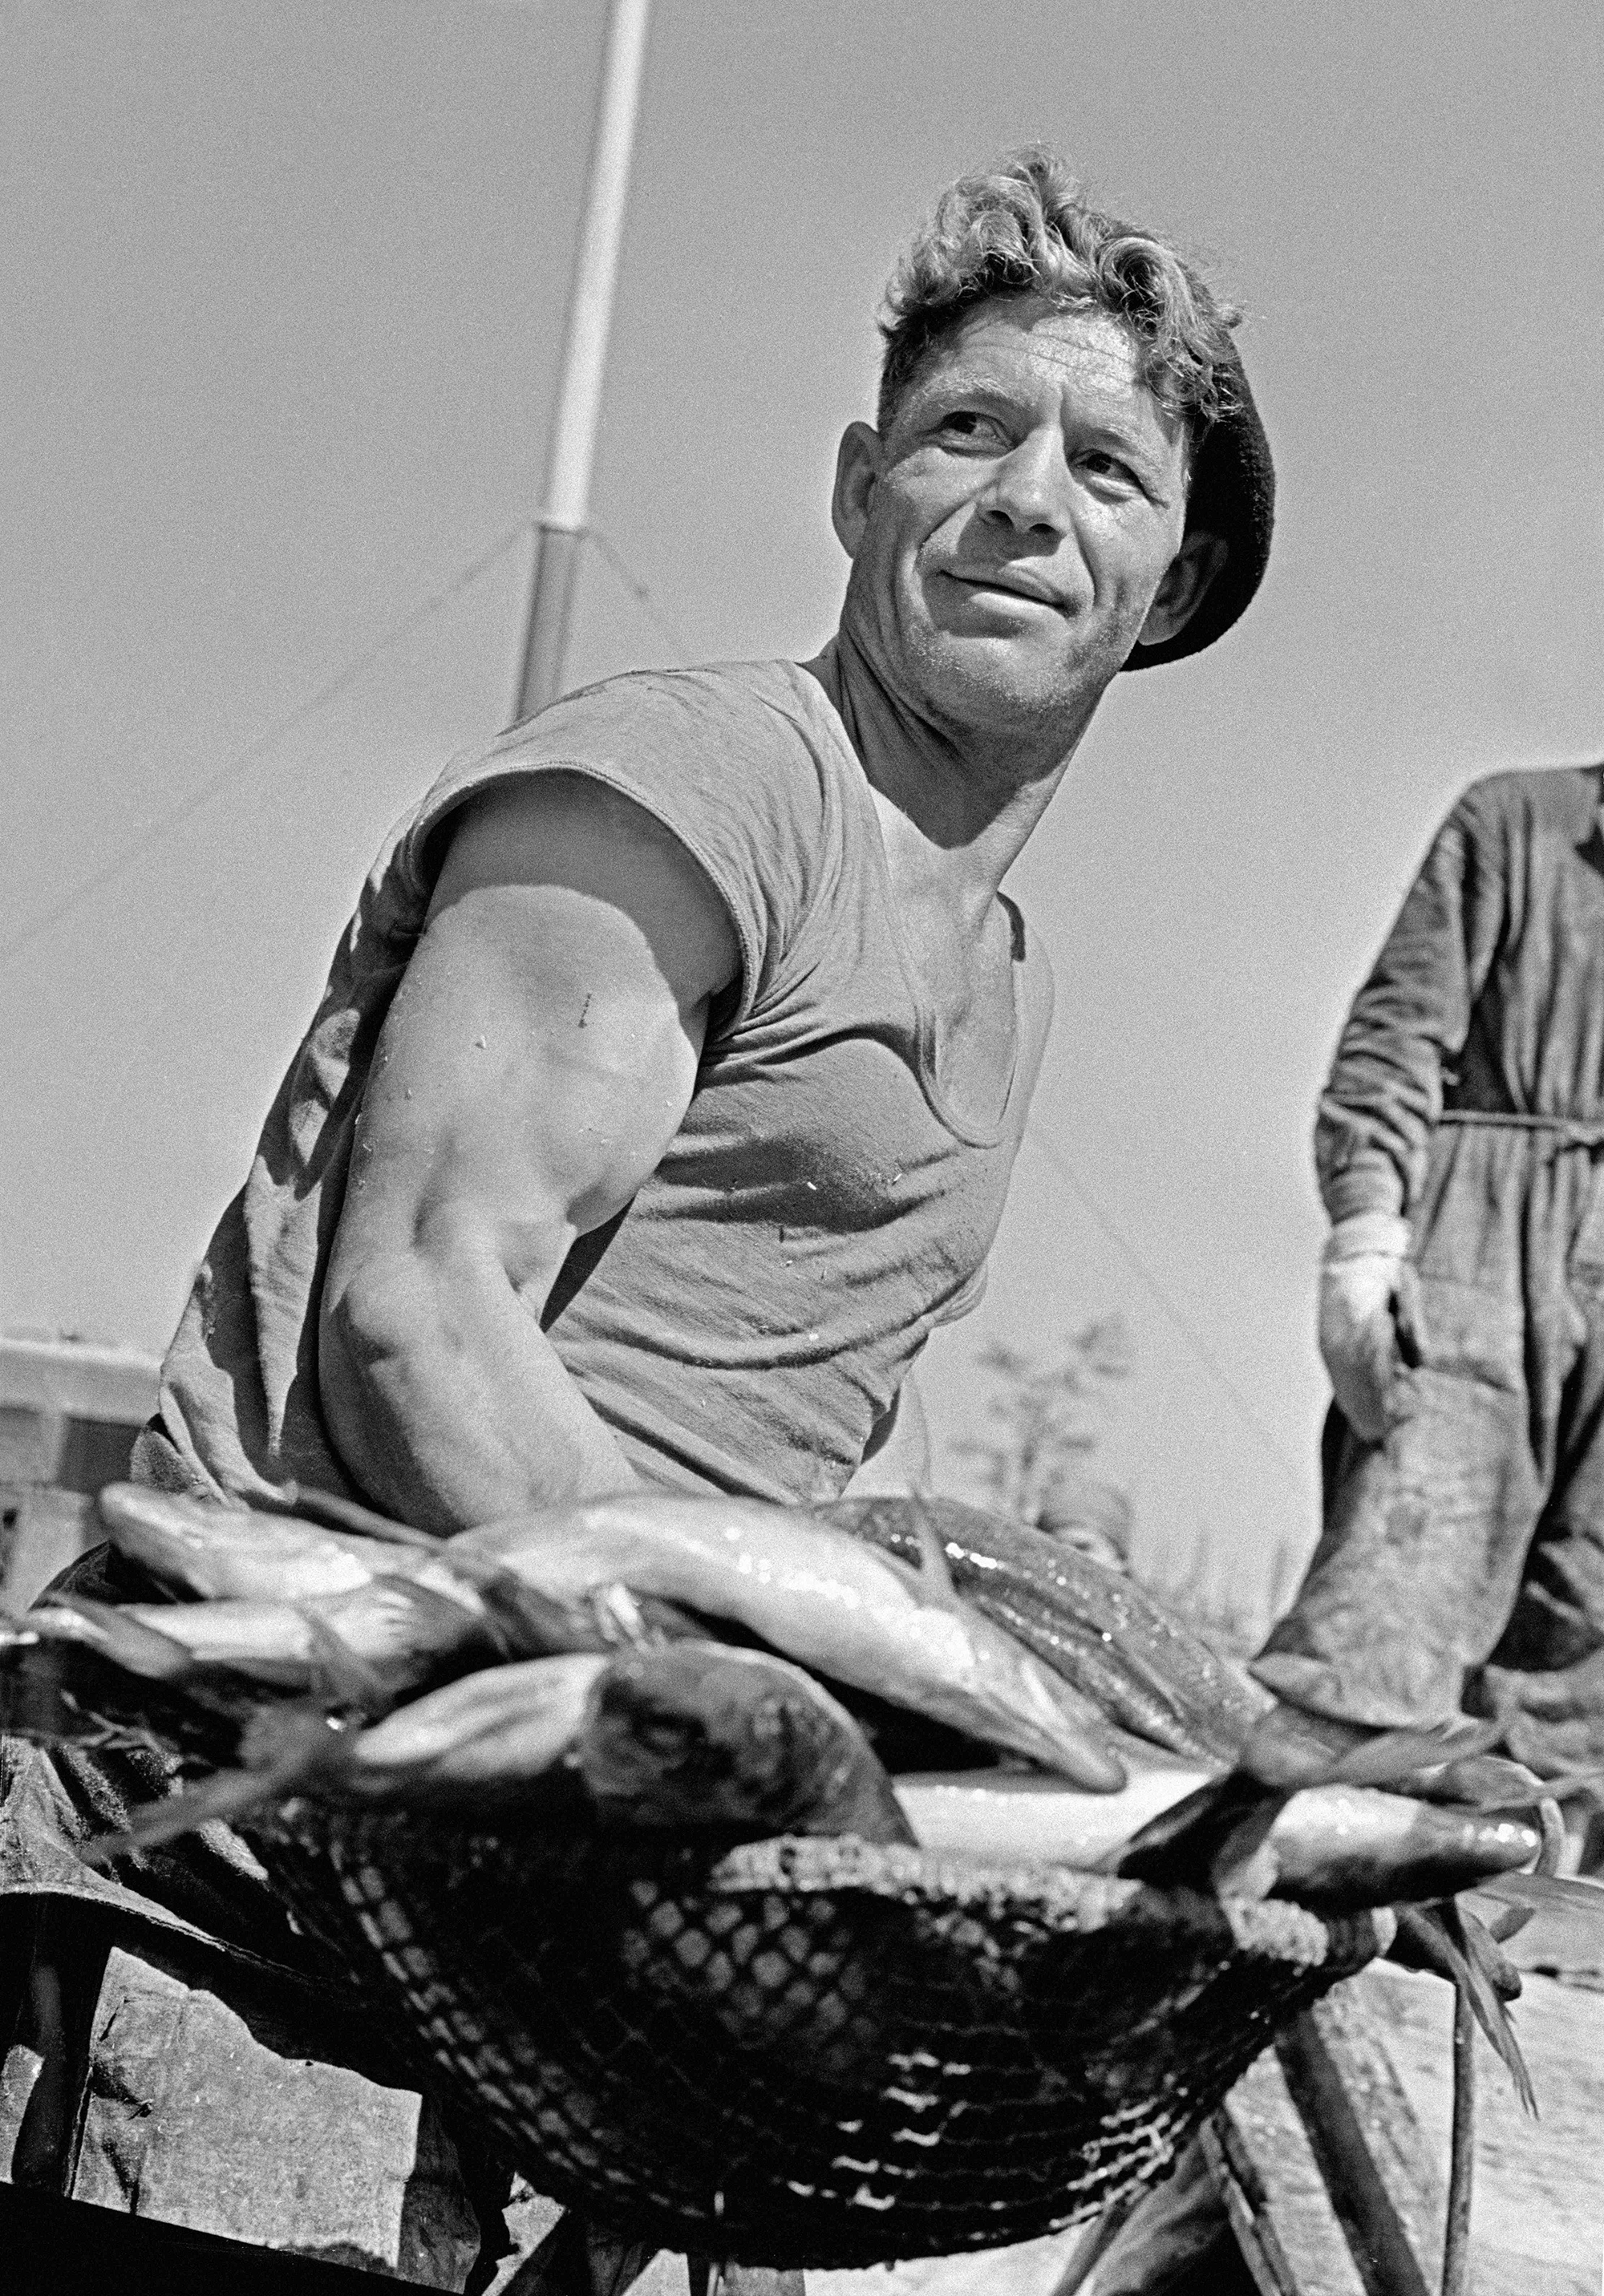 Besides taking pictures of world's leaders, Abramochkin has always considered it extremely important to capture images of the lives of ordinary people. He was one of the first photojournalists to bring spontaneous scenes to reportage photography. // Fishermen, Astrakhan, 1965